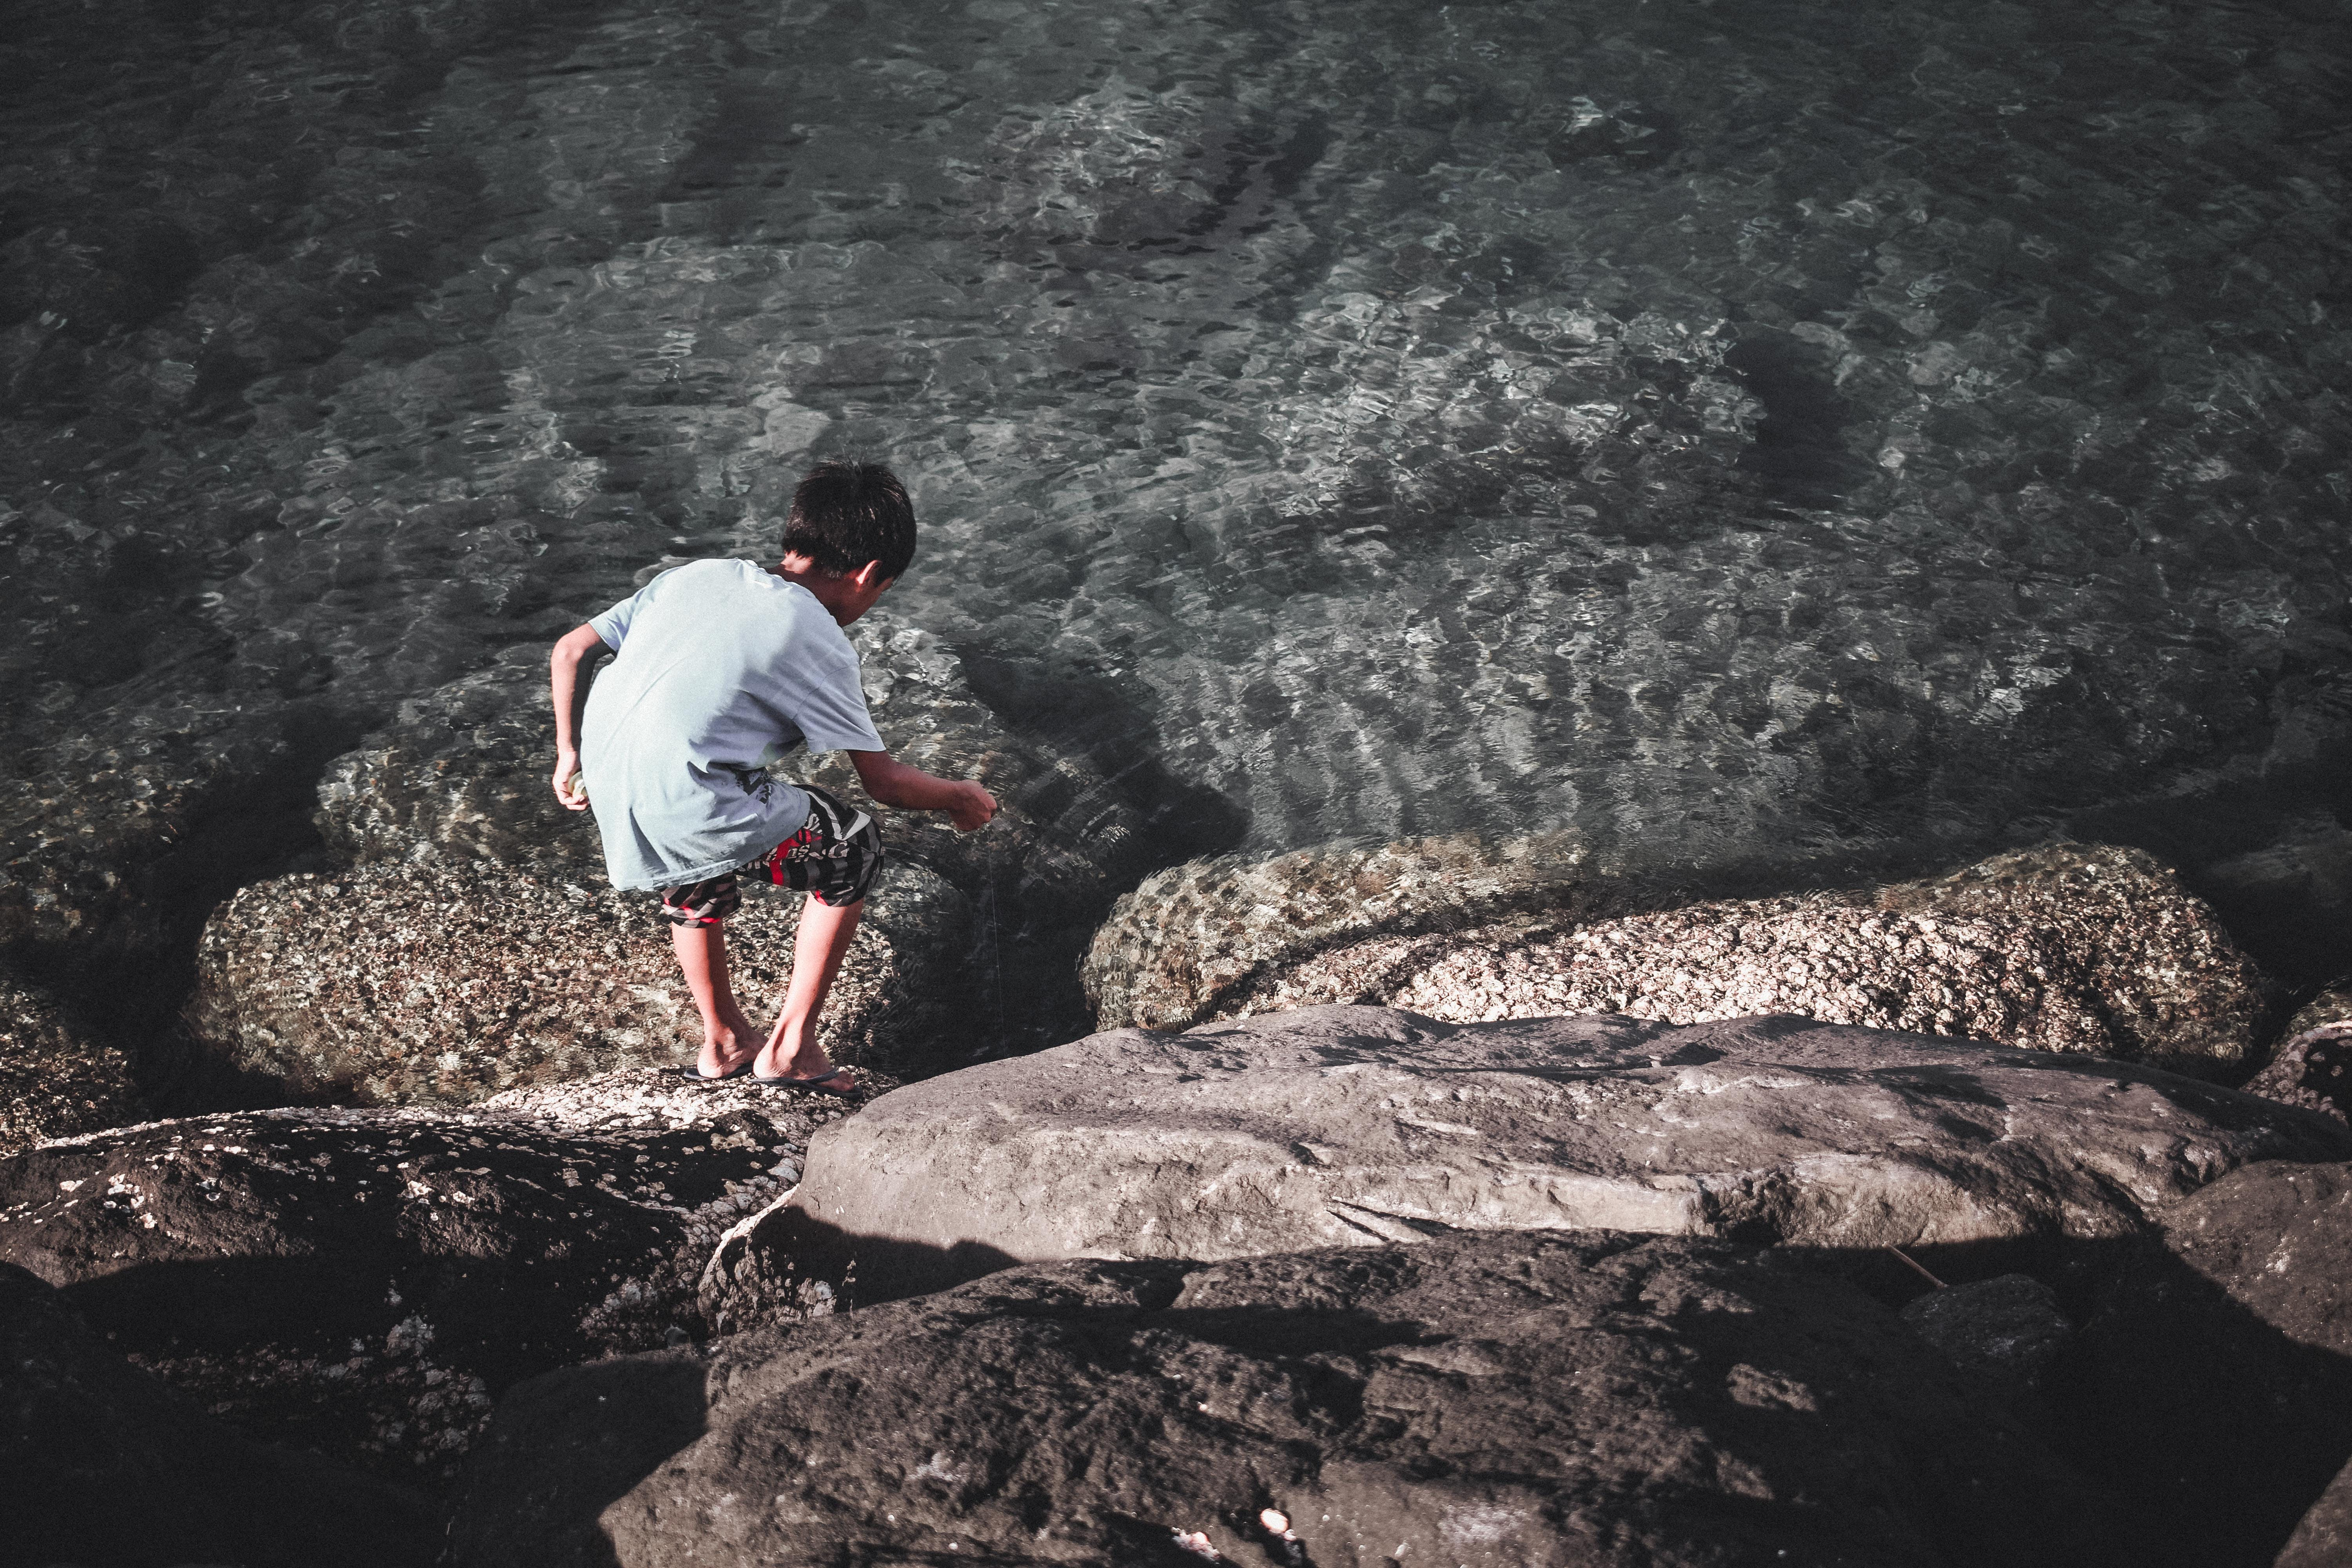 Boy Playing With Stick Near Water